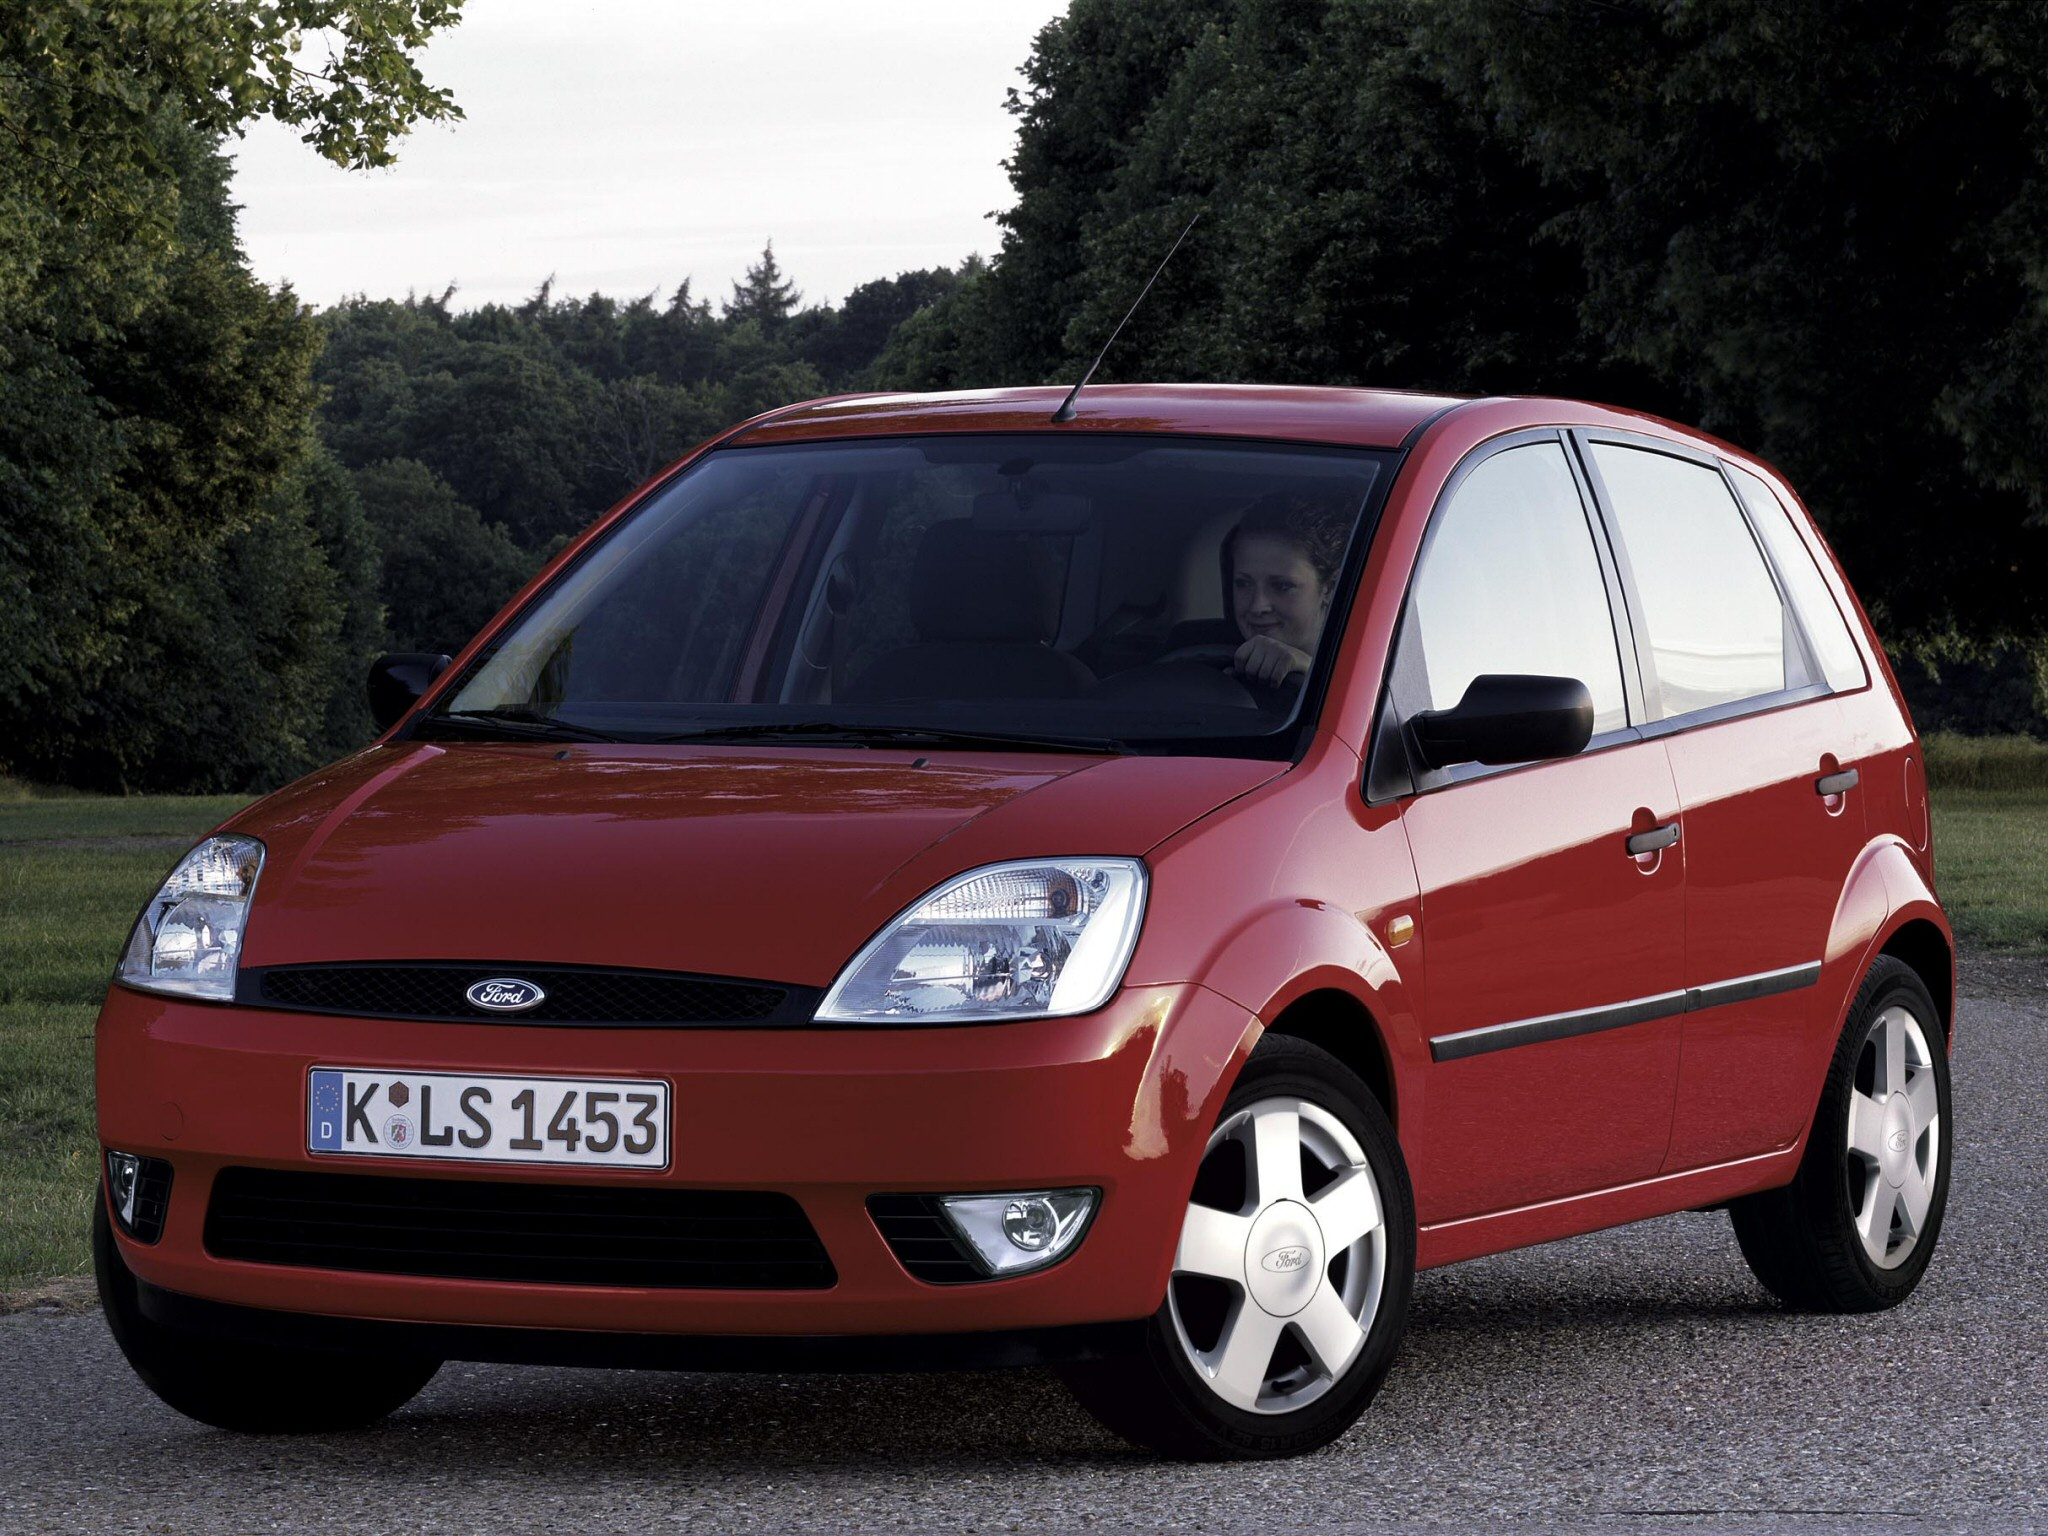 Ford Fiesta 2.0 2002 photo - 3